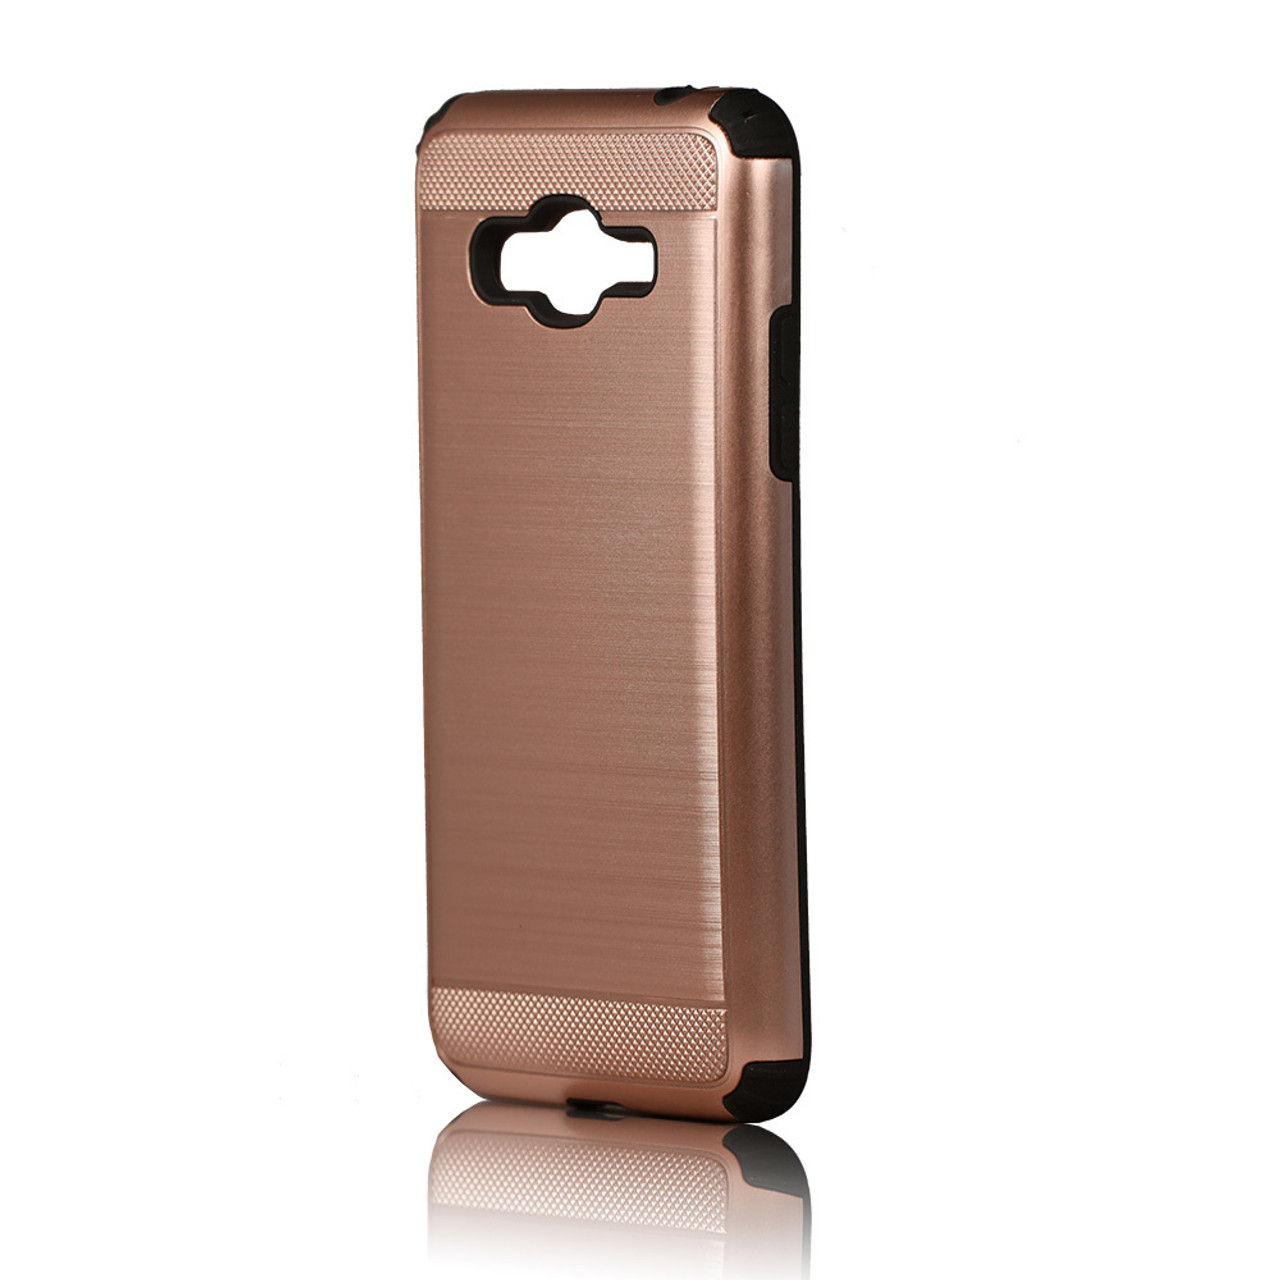 official photos e59c1 08124 Hard Pod Hybrid Case for Samsung Galaxy S5 Rose Gold-Black